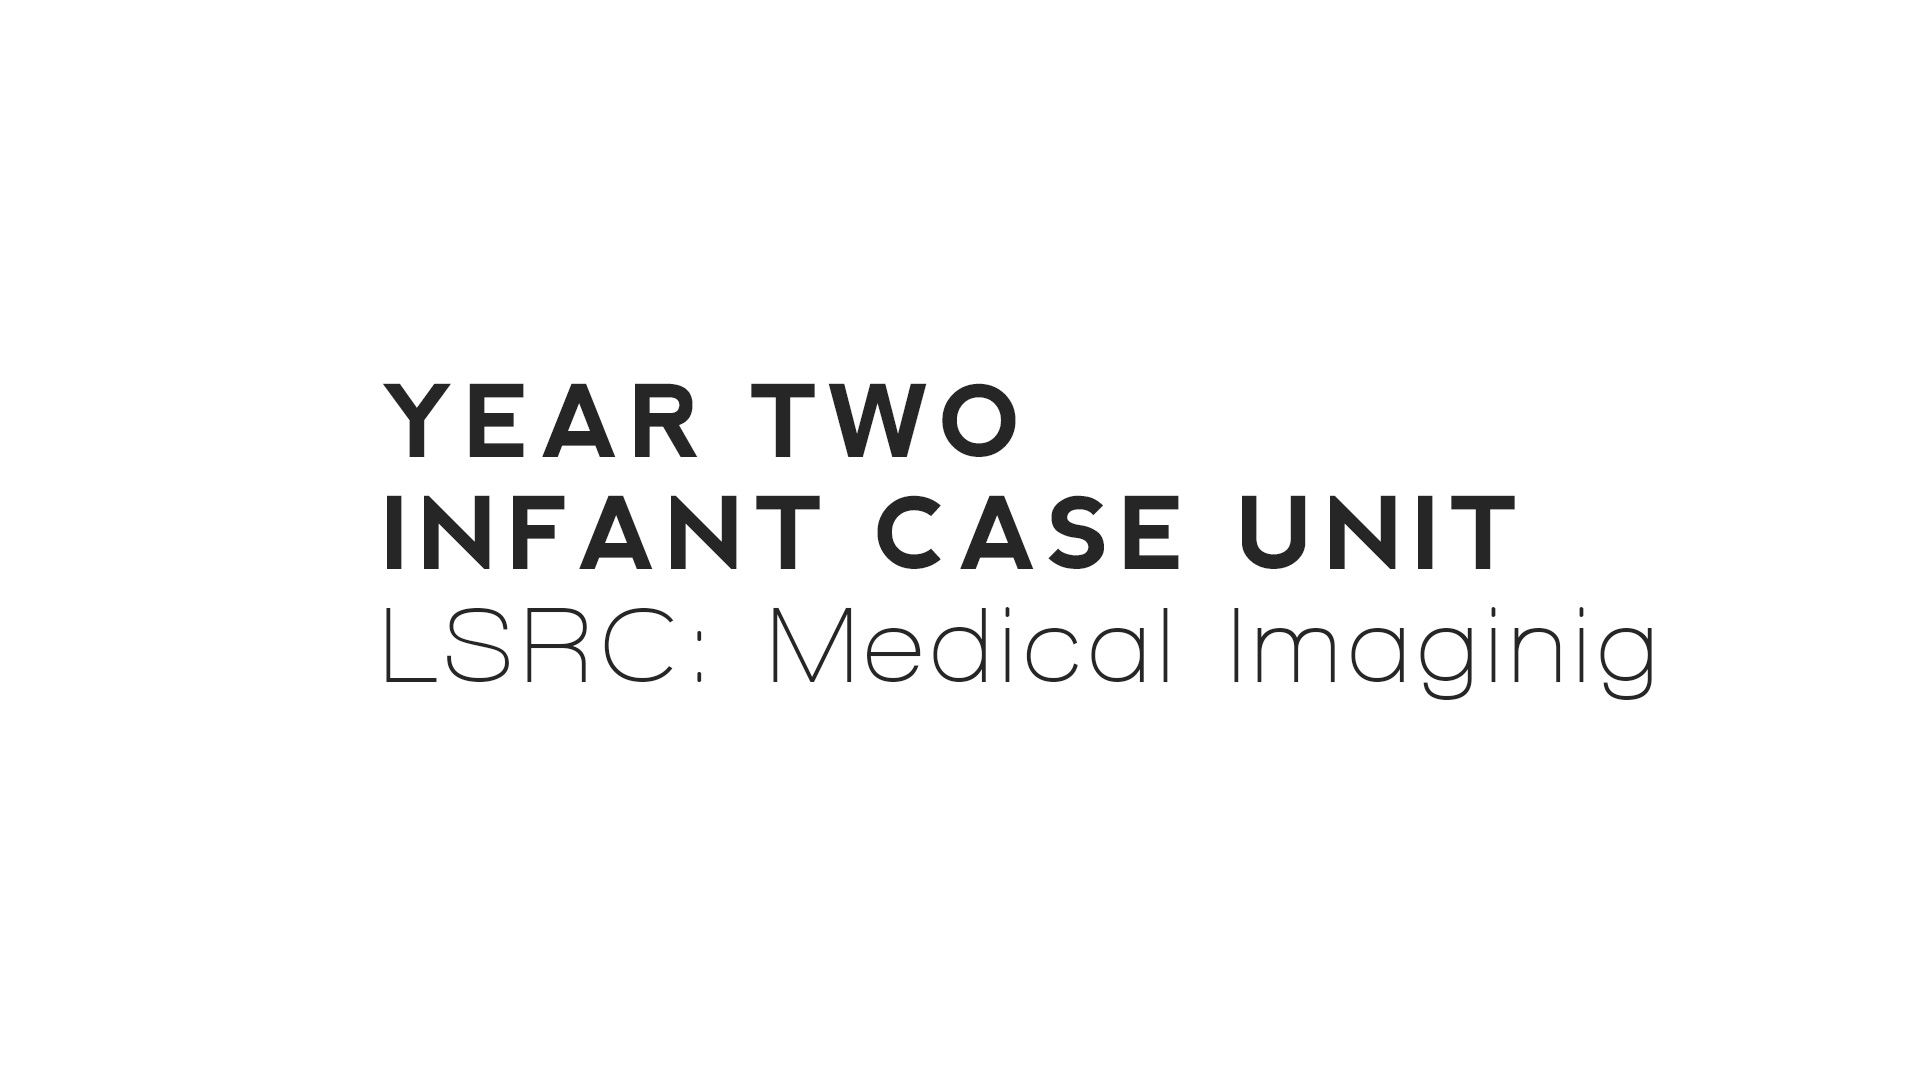 Infant Case Unit - Year 2: Medical Imaging